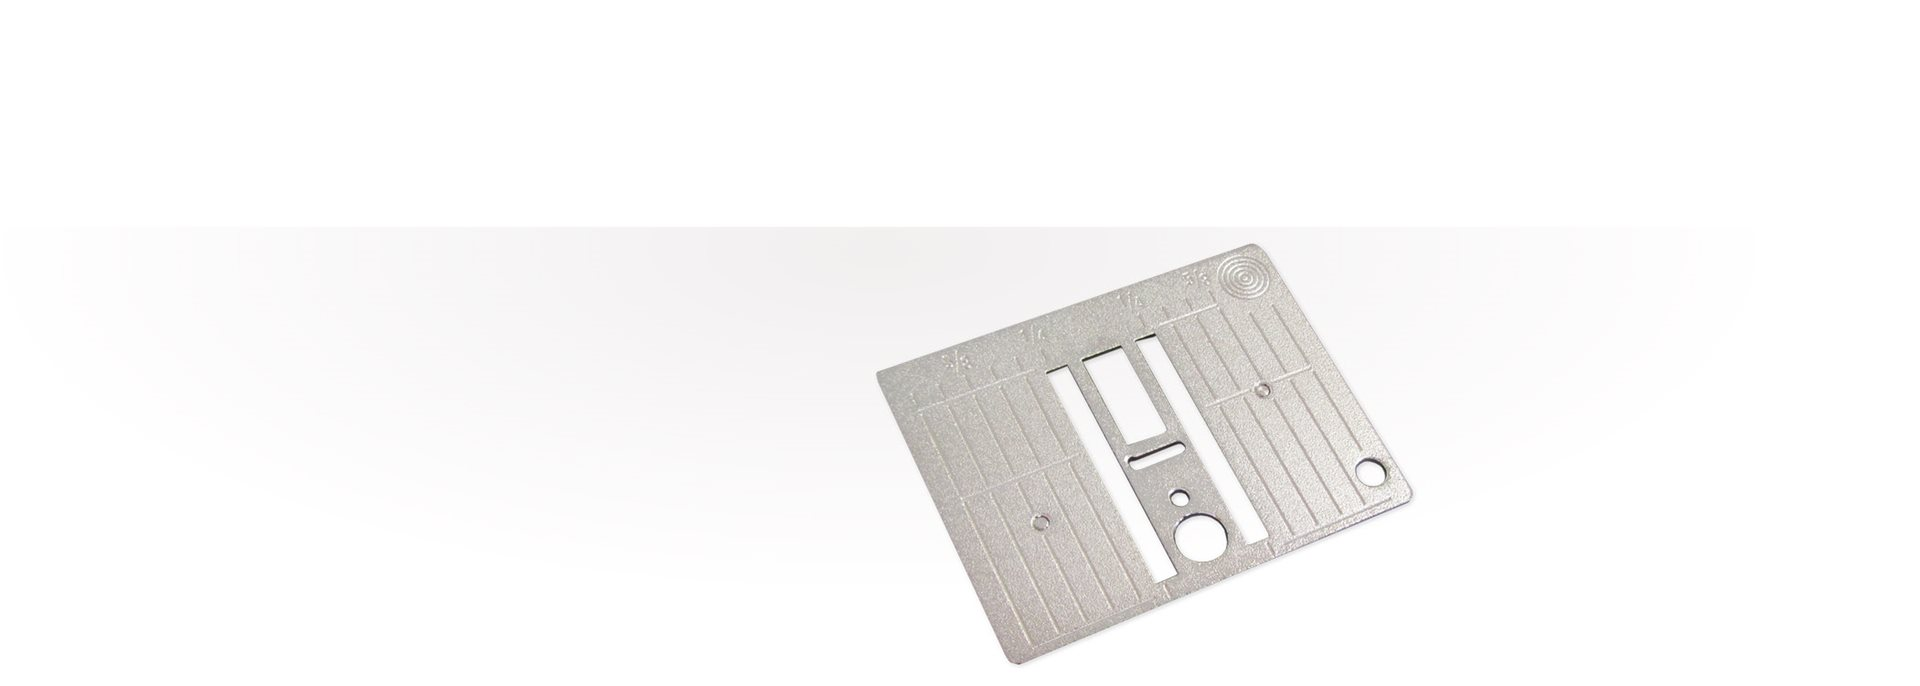 Bild: 5.5 mm Stitch plate for needle-punch tool (CB hook)